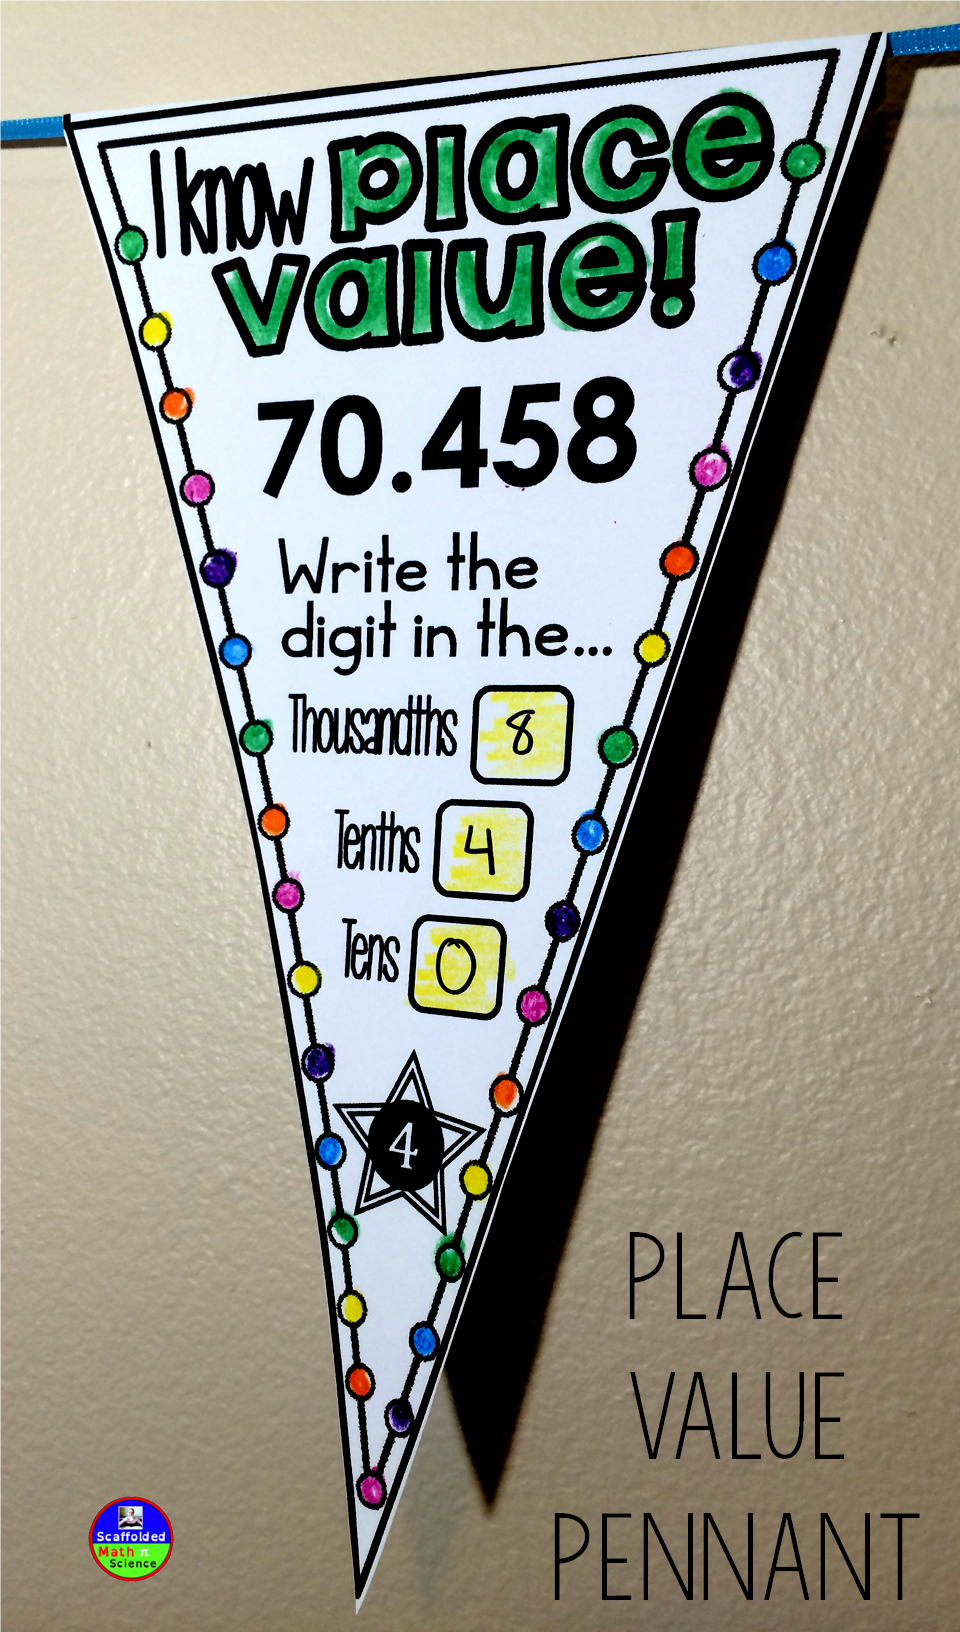 Place Value To The Thousandths Also A Link To A Place Value Pennant For Younger Math Pennant Math Interactive Notebook Differentiation Math [ 1632 x 960 Pixel ]